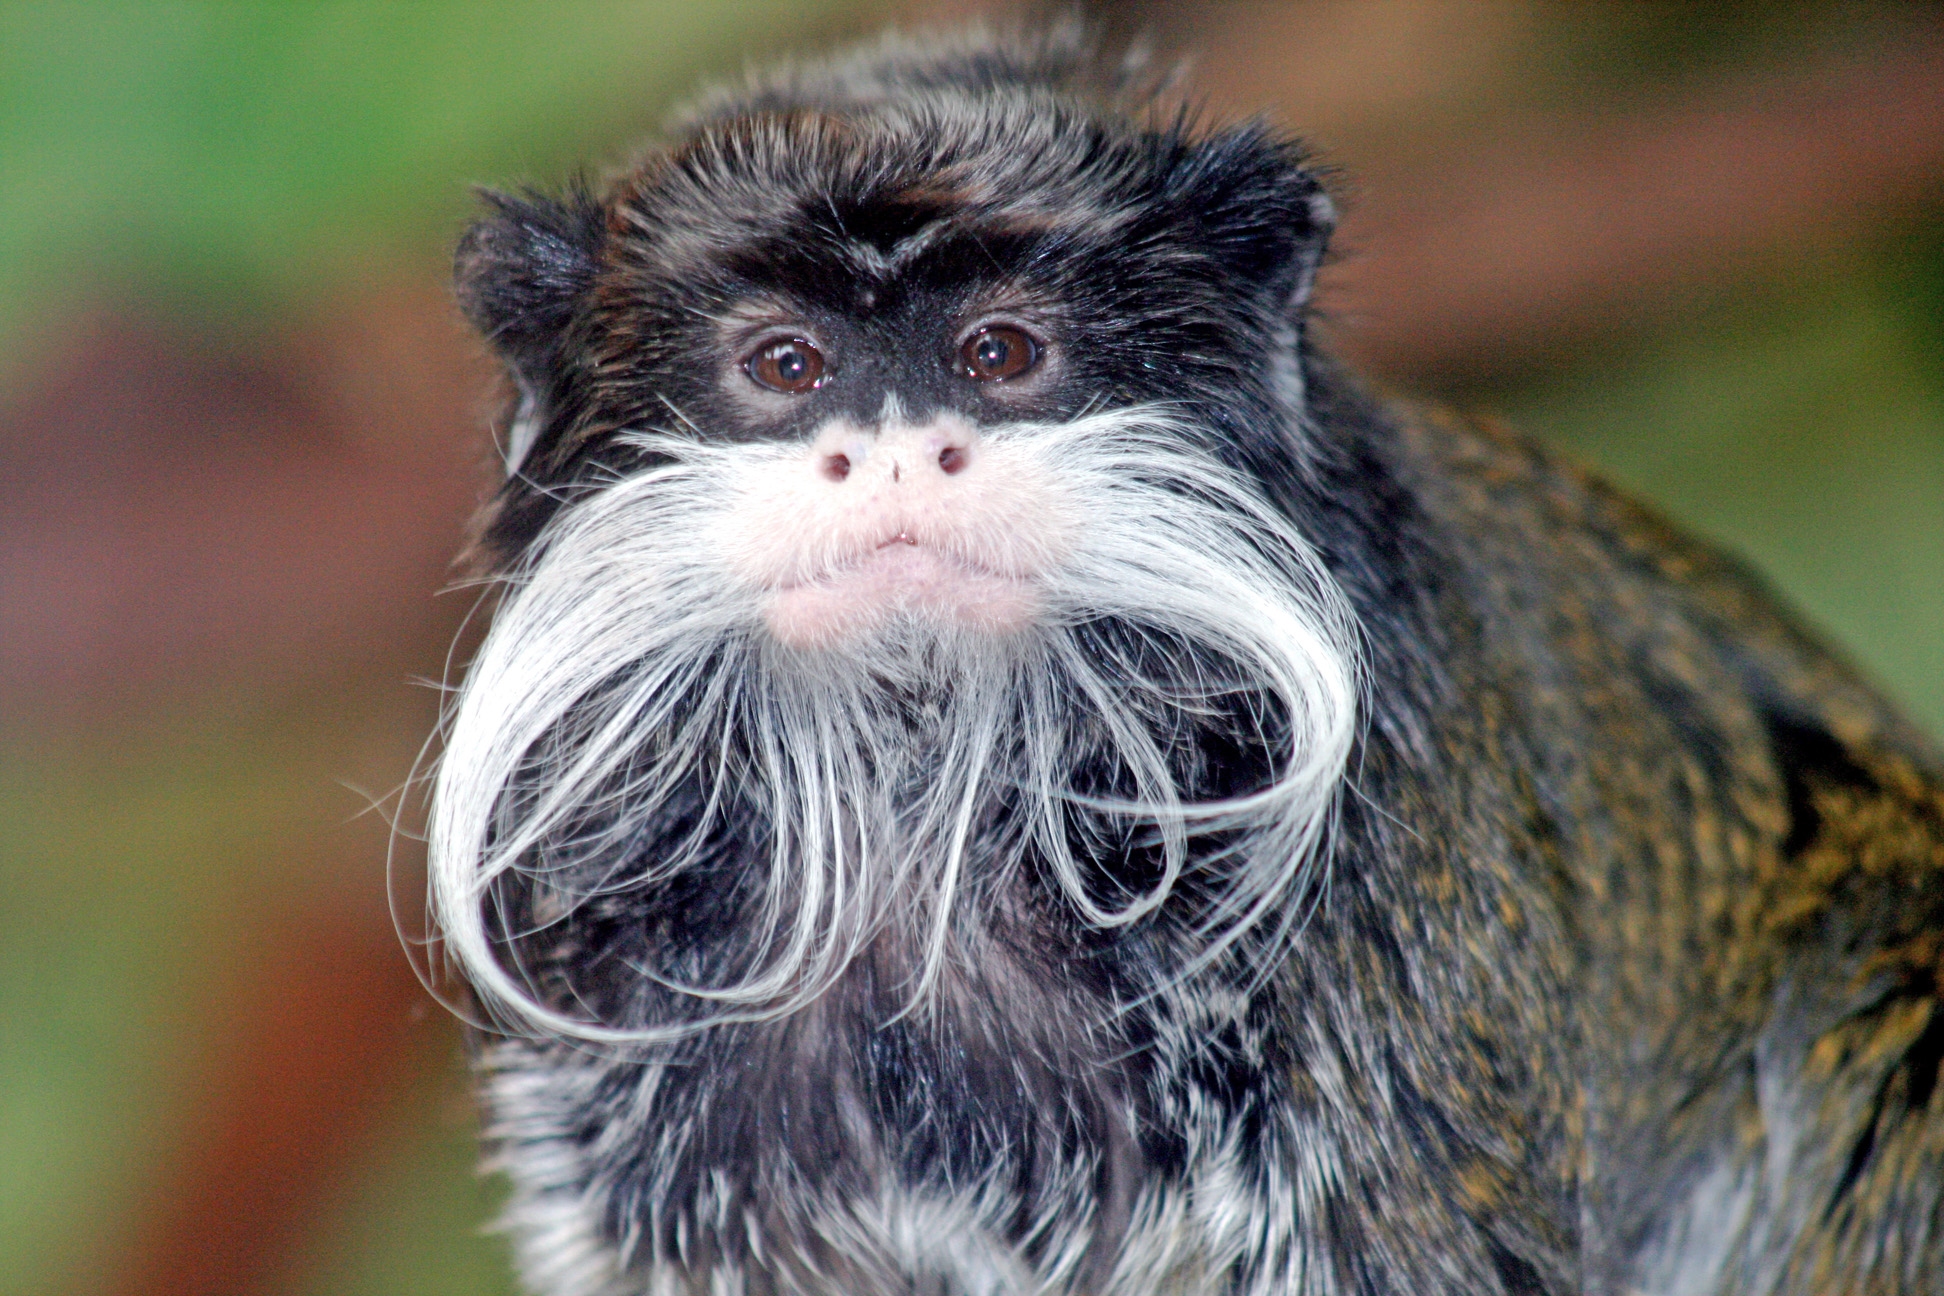 http://upload.wikimedia.org/wikipedia/commons/9/92/Tamarin_portrait_edit.jpg